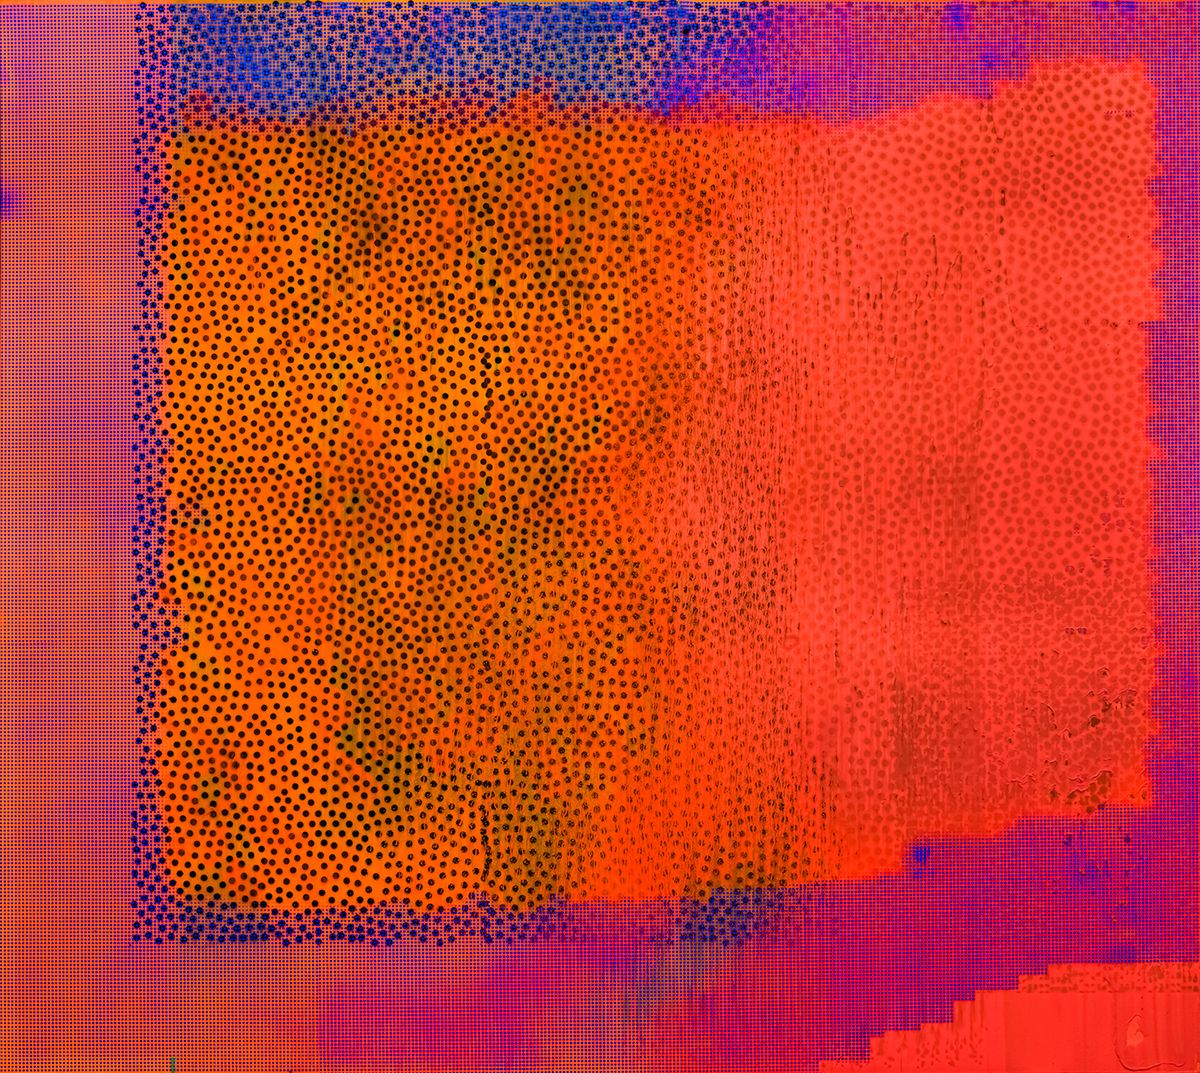 Jacqueline Humphries Untitled, 2015 Oil and enamel on linen 114 x 127 inches (289.6 x 322.6 cm)